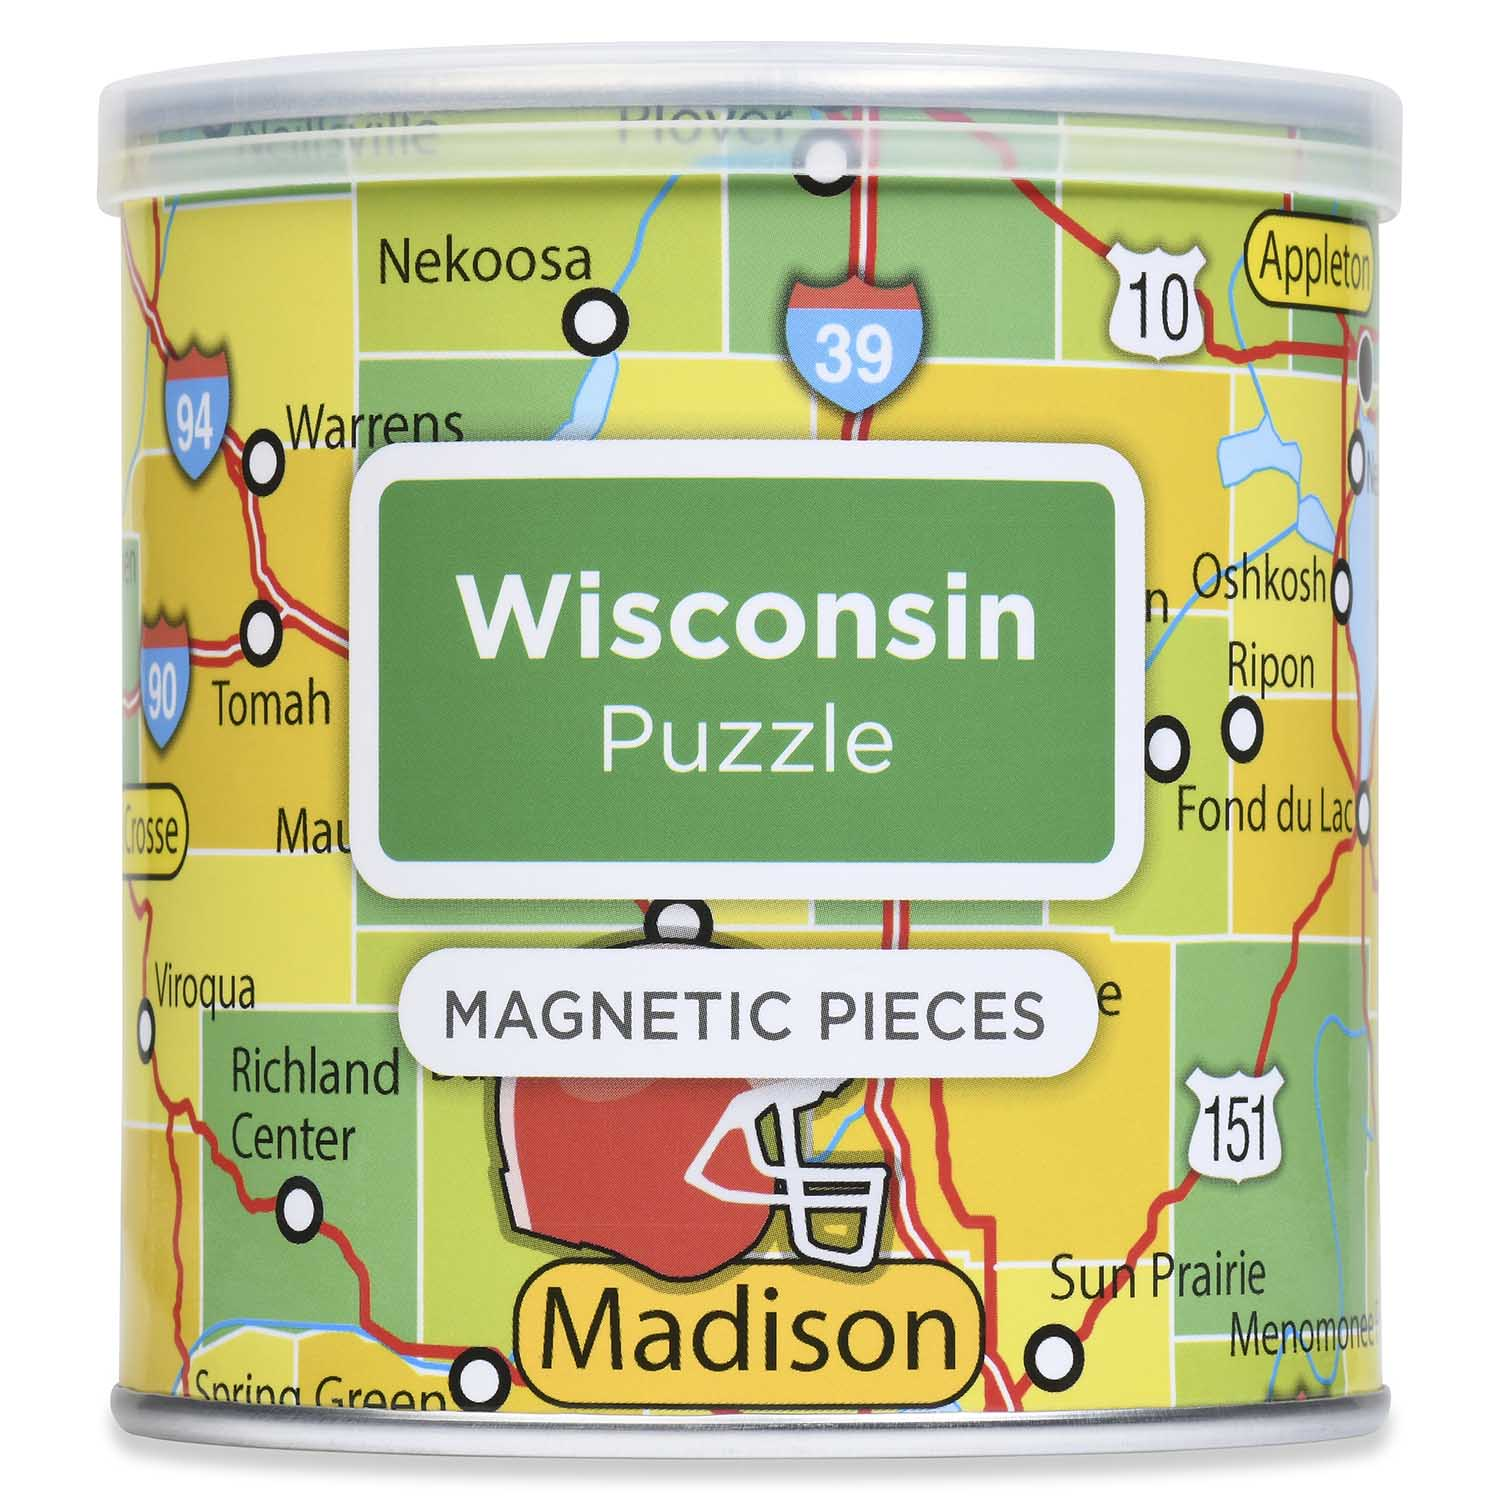 City Magnetic Puzzle Wisconsin Cities Jigsaw Puzzle